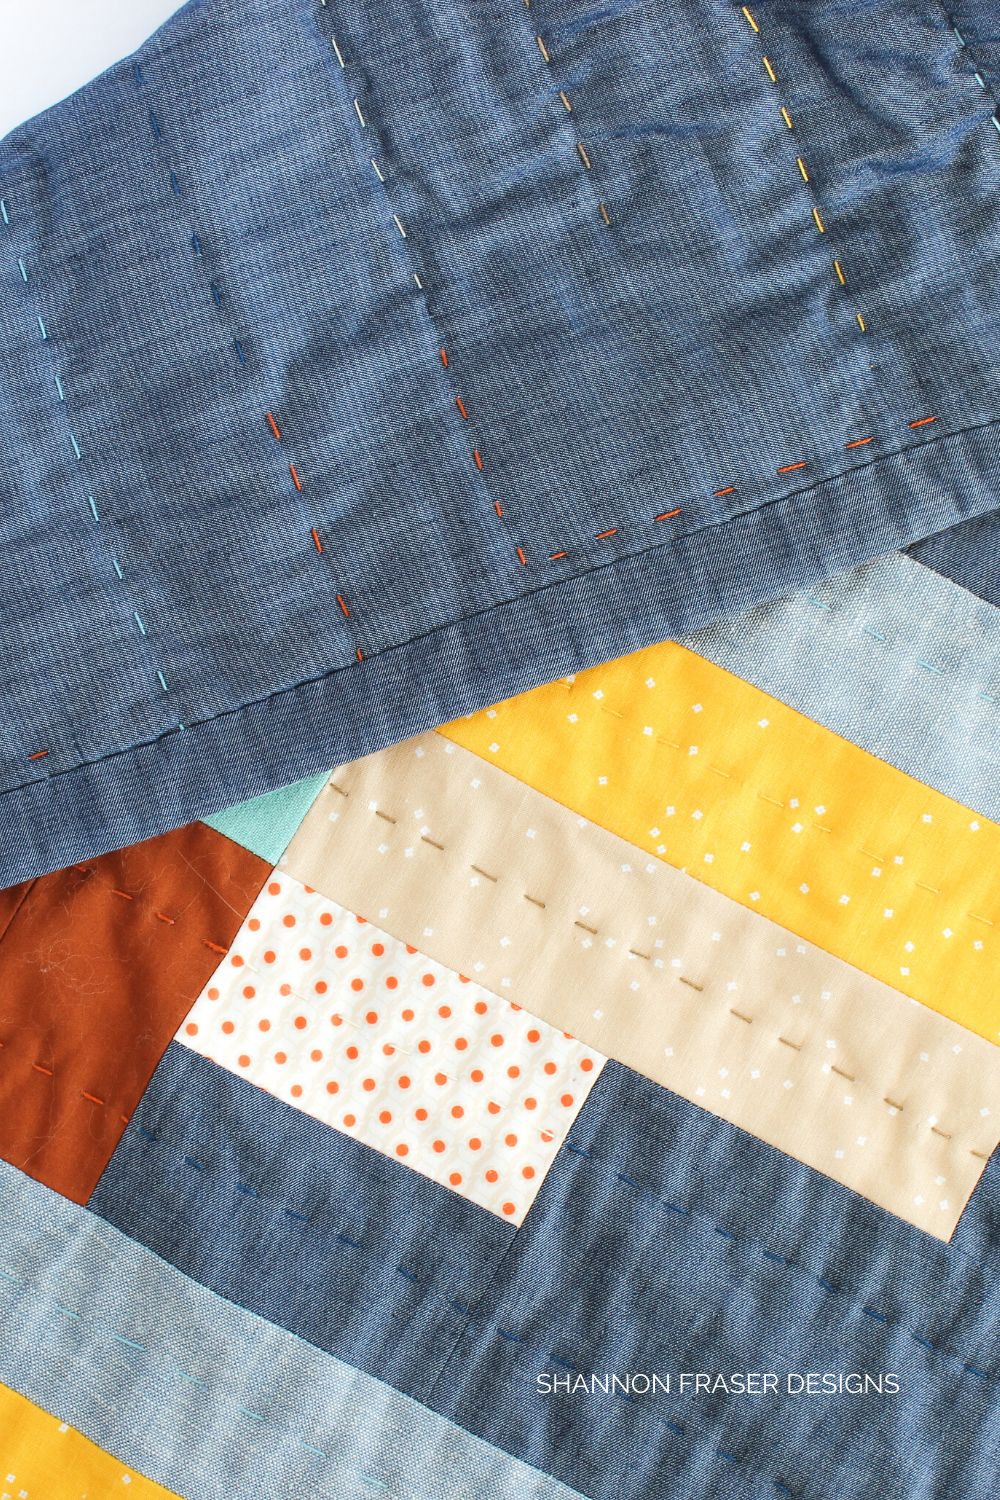 Faced binding for a nice clean finish on the hand quilted Landmark quilted wall hanging | Urban Quilting Book | Shannon Fraser Designs #modernquilt